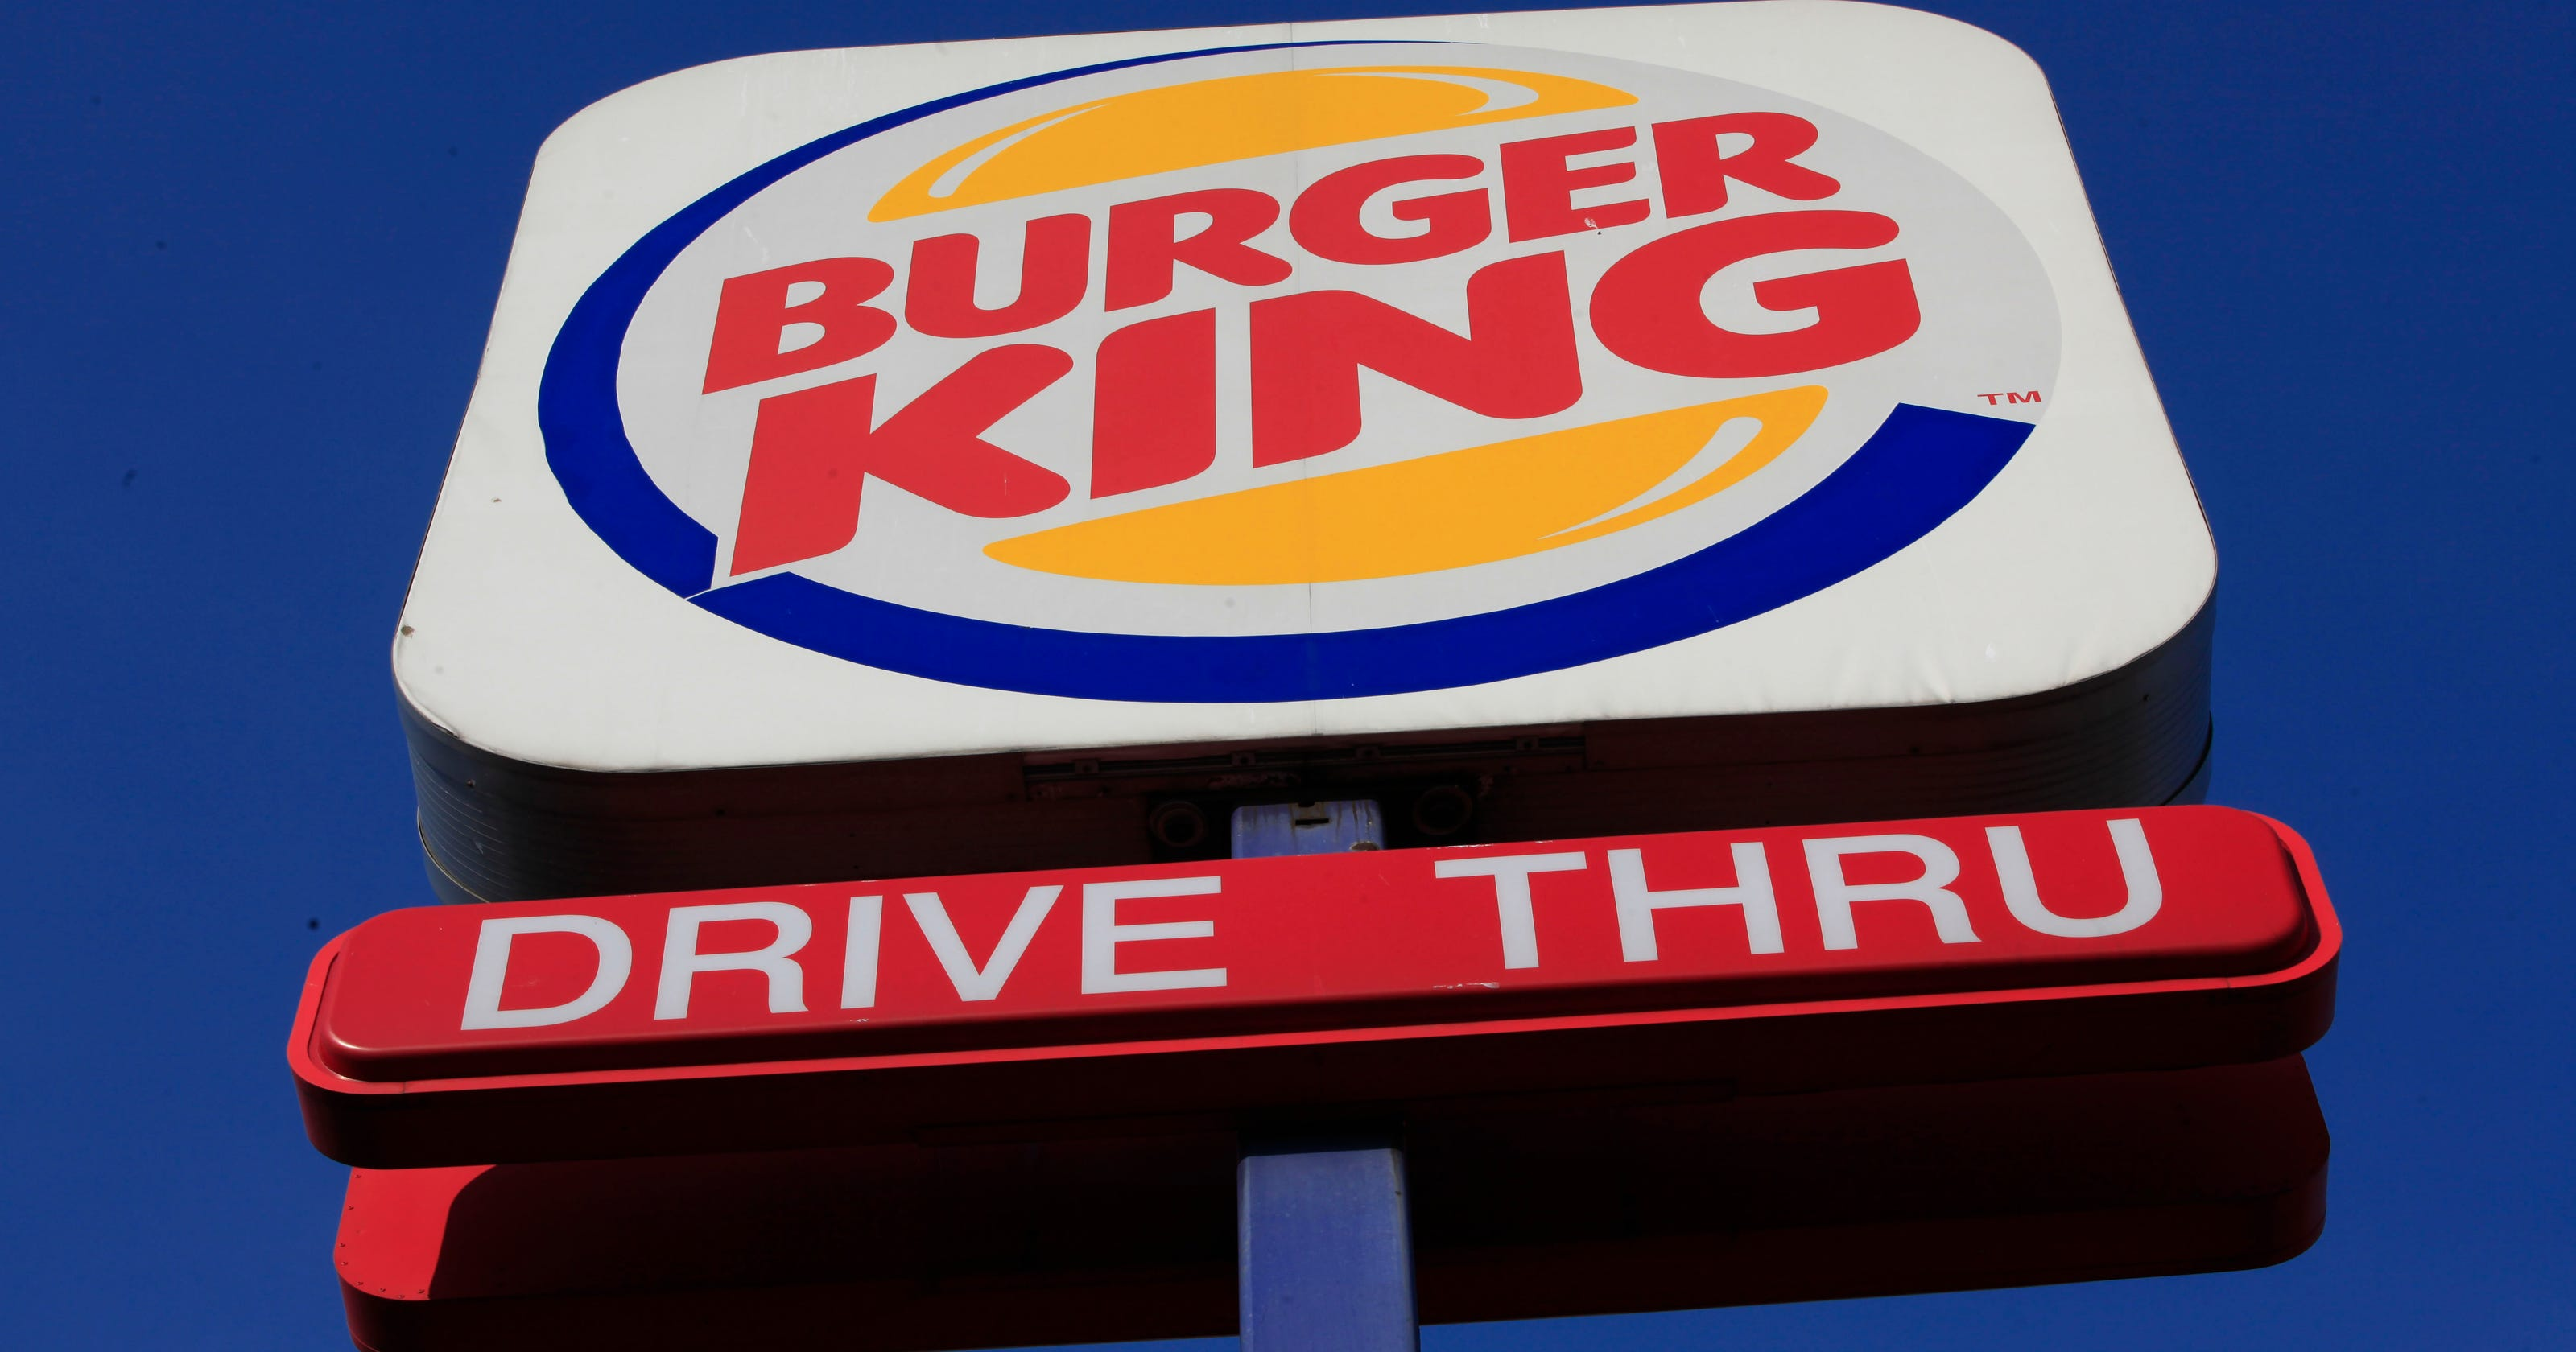 Burger King Customers Eligible For Class Action Lawsuit Settlement